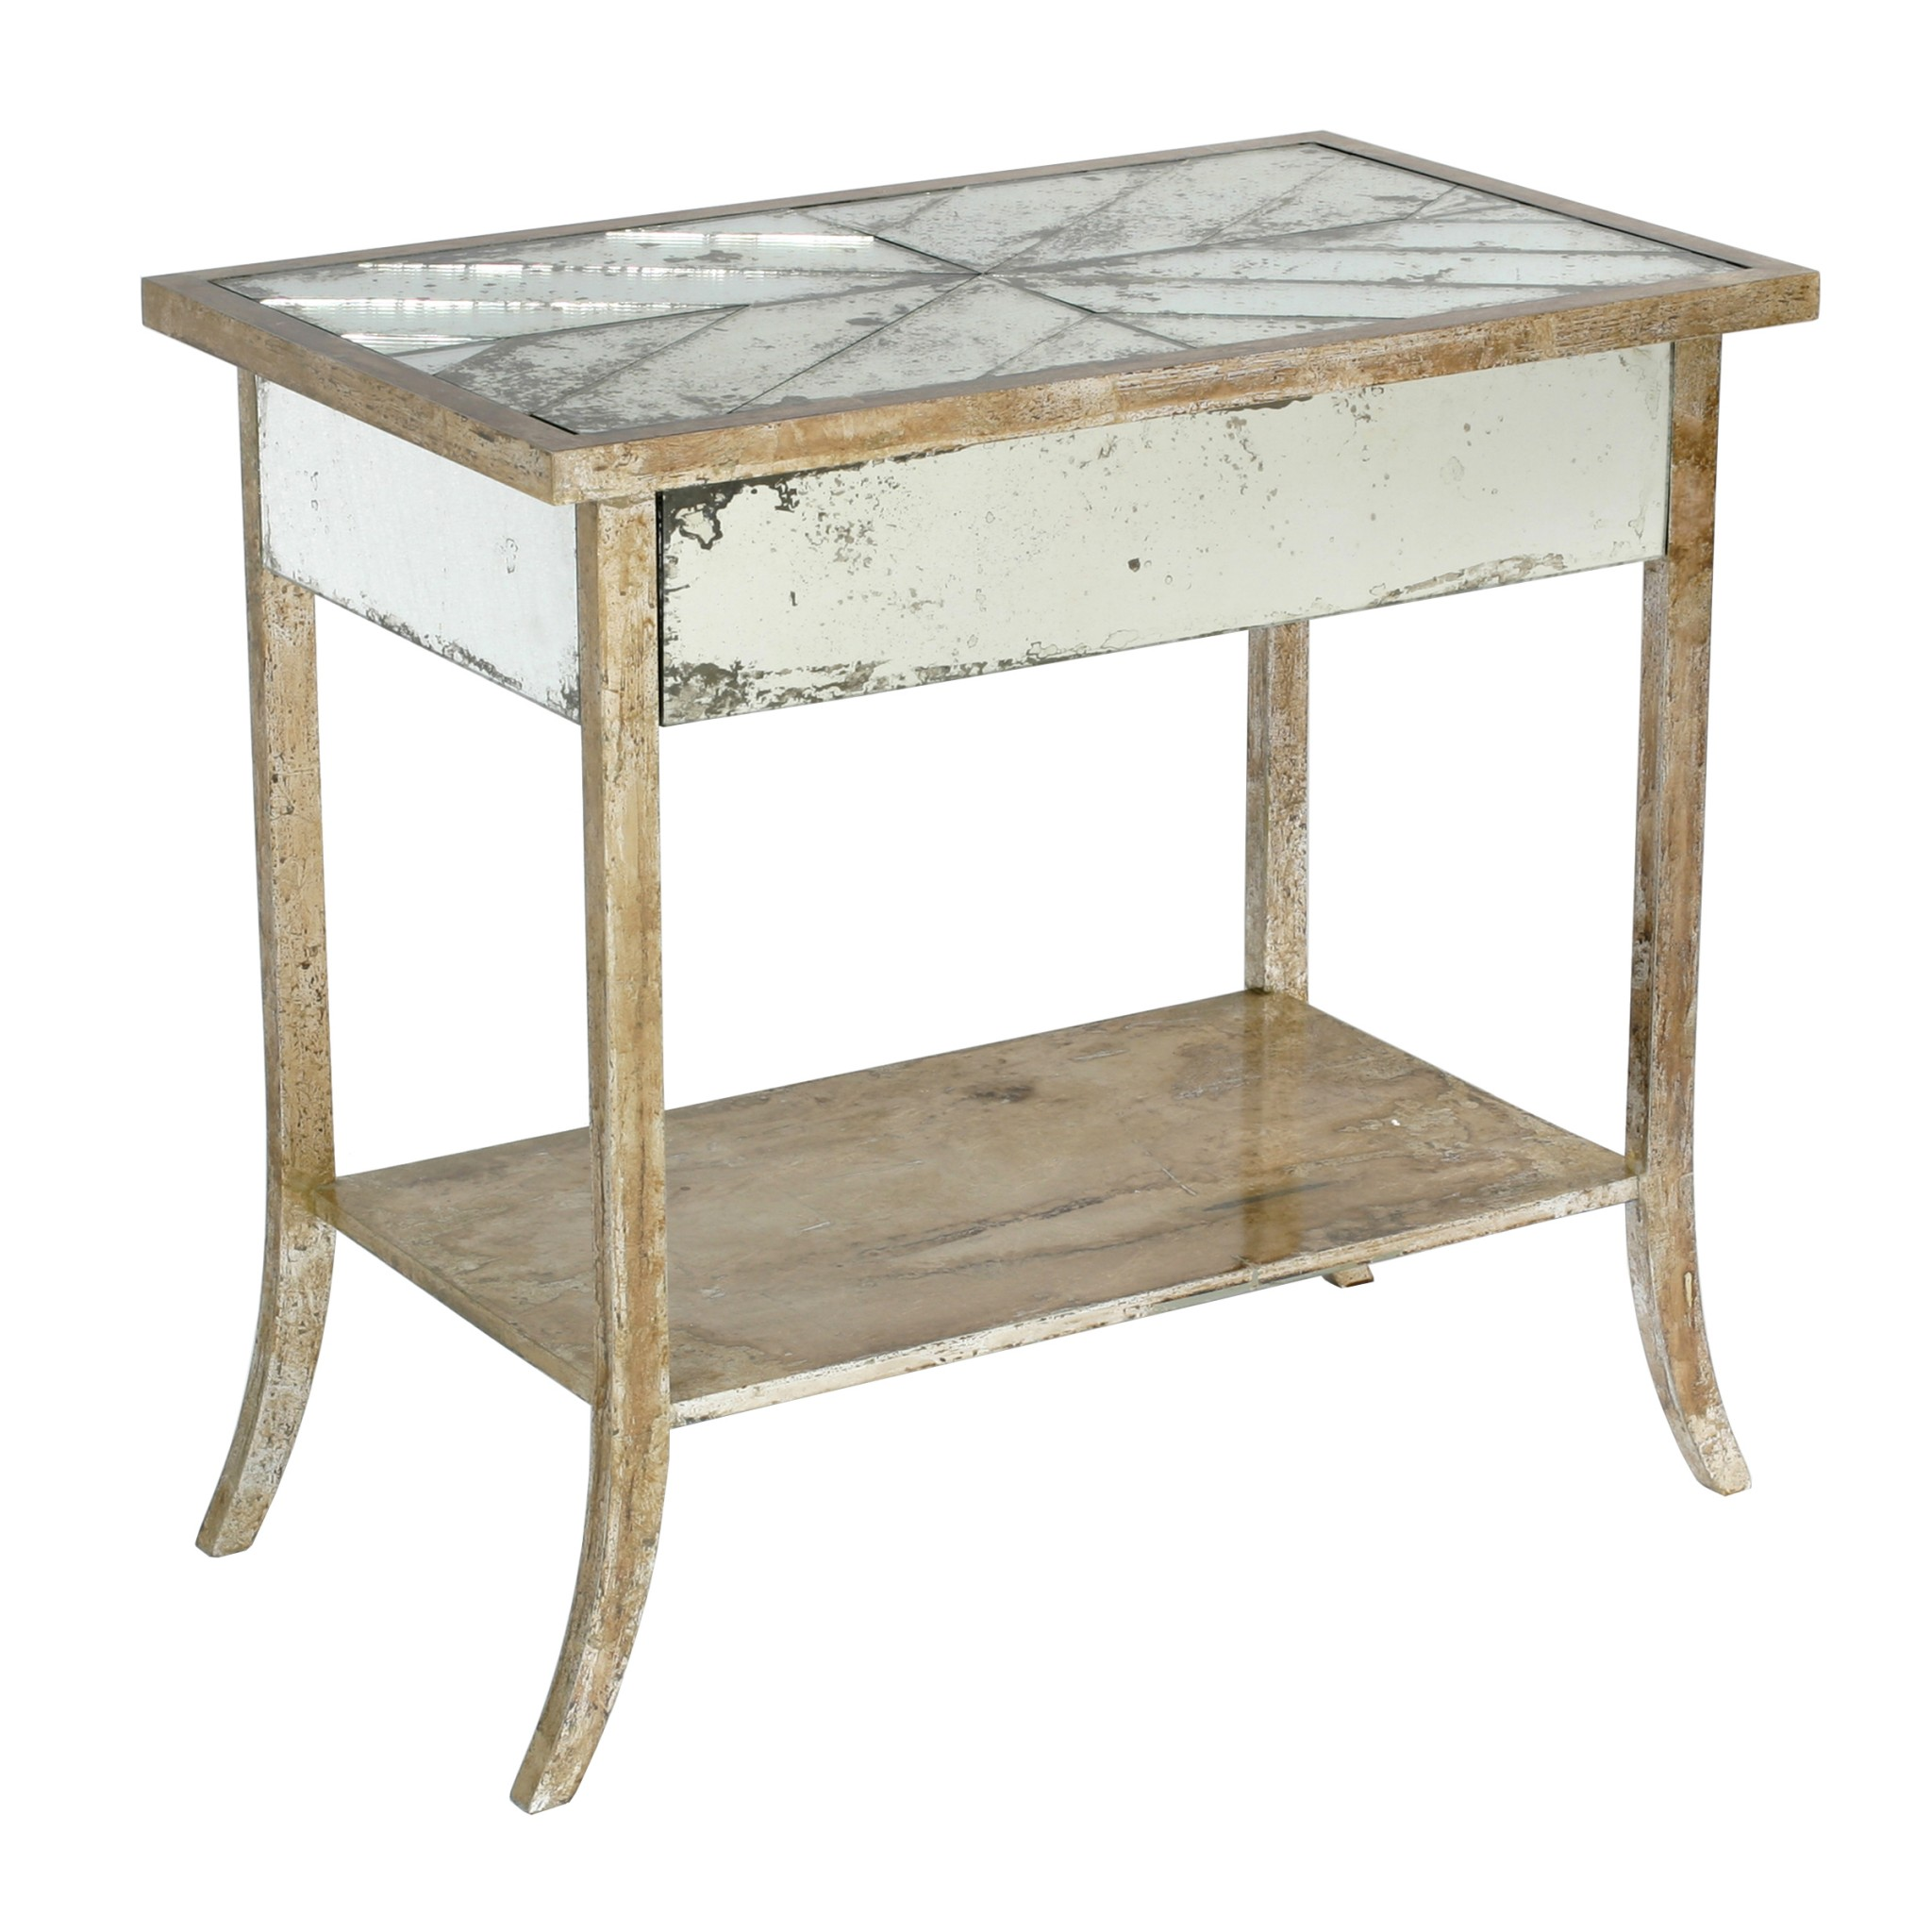 the super free target black side table mira road parquet niermann weeks second hand coffee laptop monitor stand wood log end gold metal and glass tables traditional lamps white